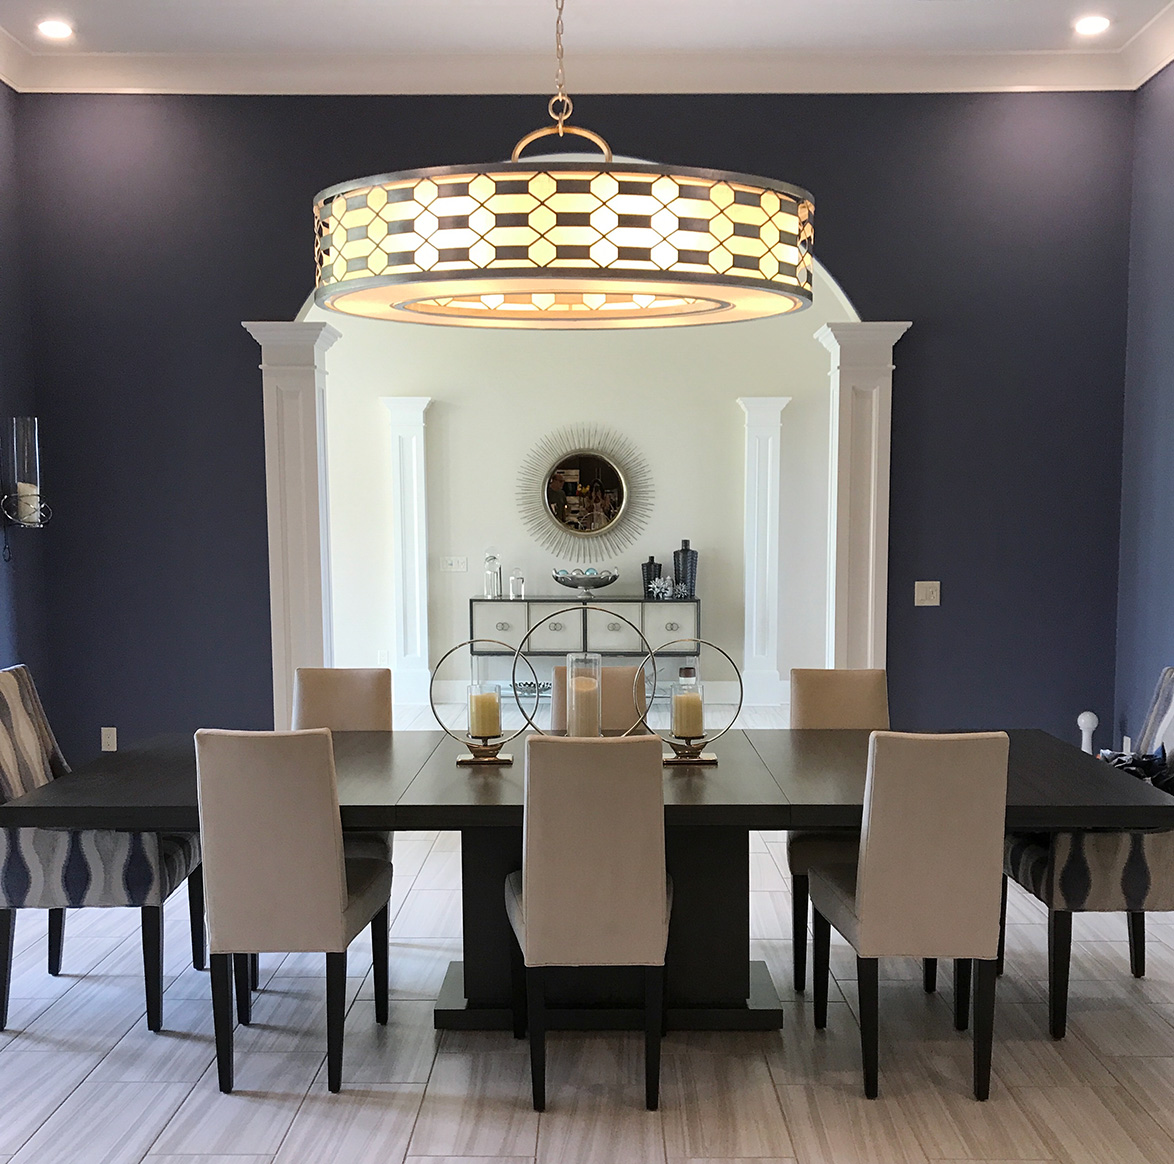 Superbe Dining Room Interior, By Anne Marie Weissend, Design Associates. We Are A  Full